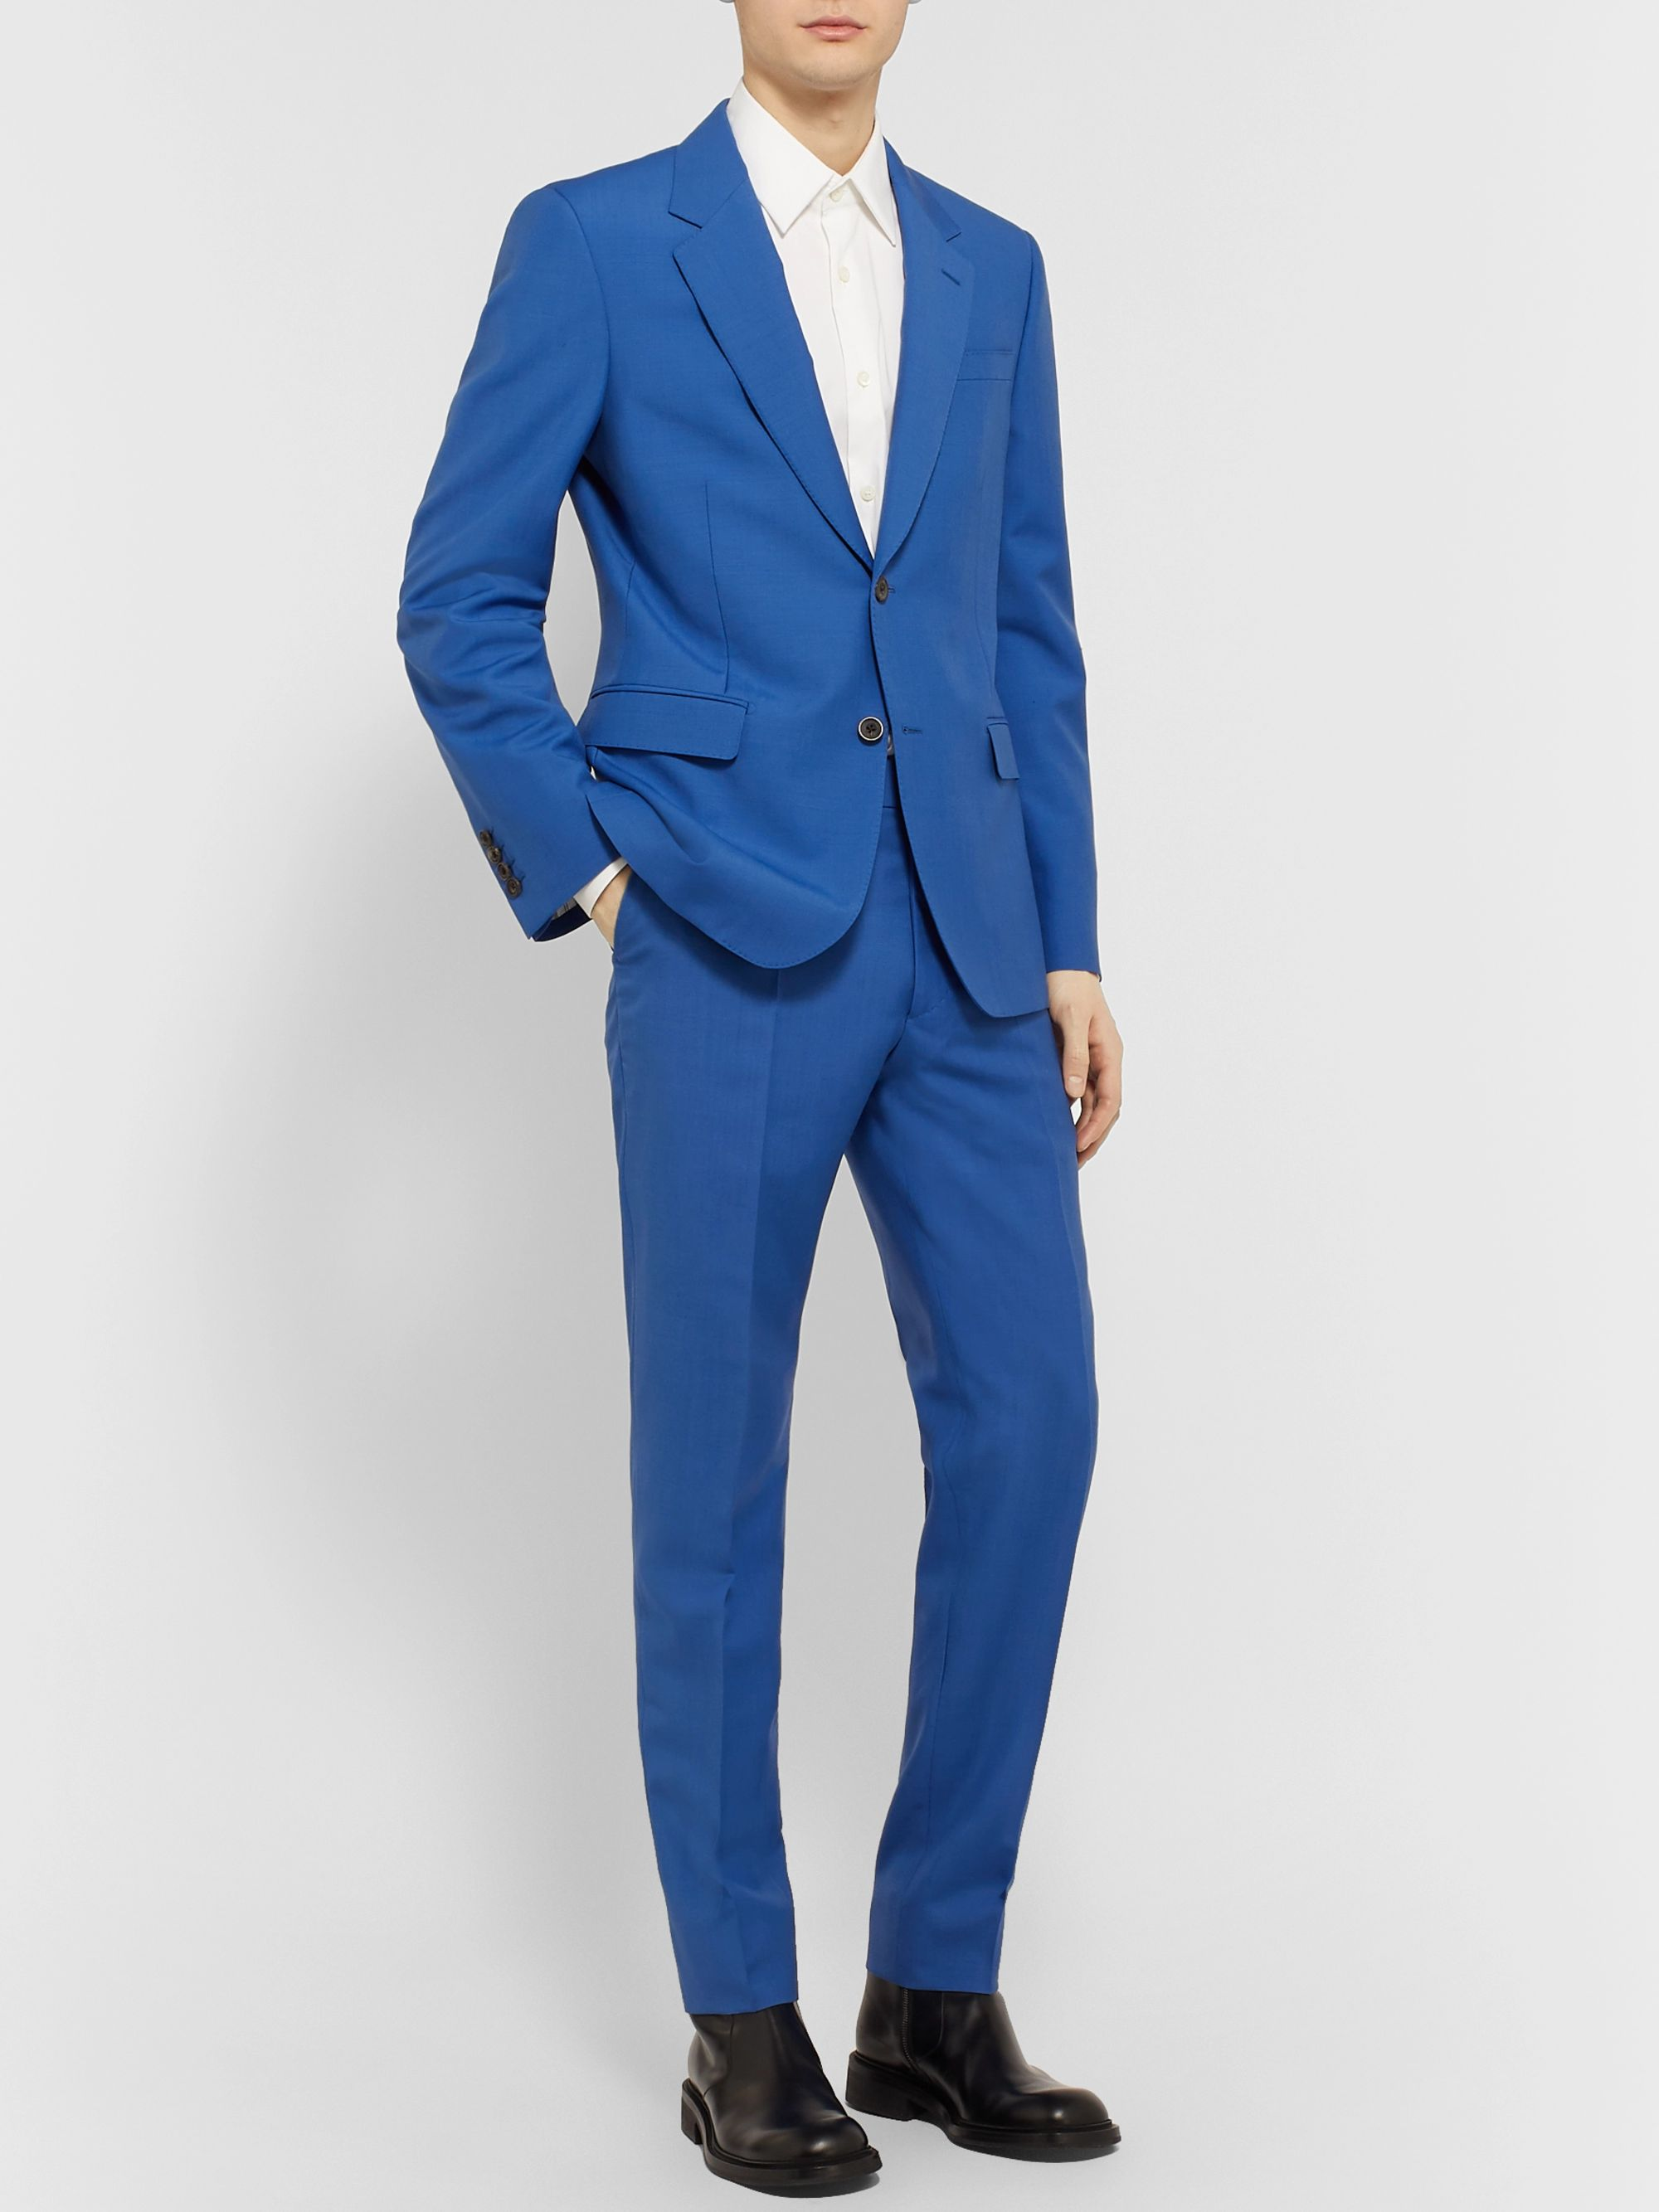 Alexander McQueen Navy Slim-Fit Wool and Mohair-Blend Suit Trousers